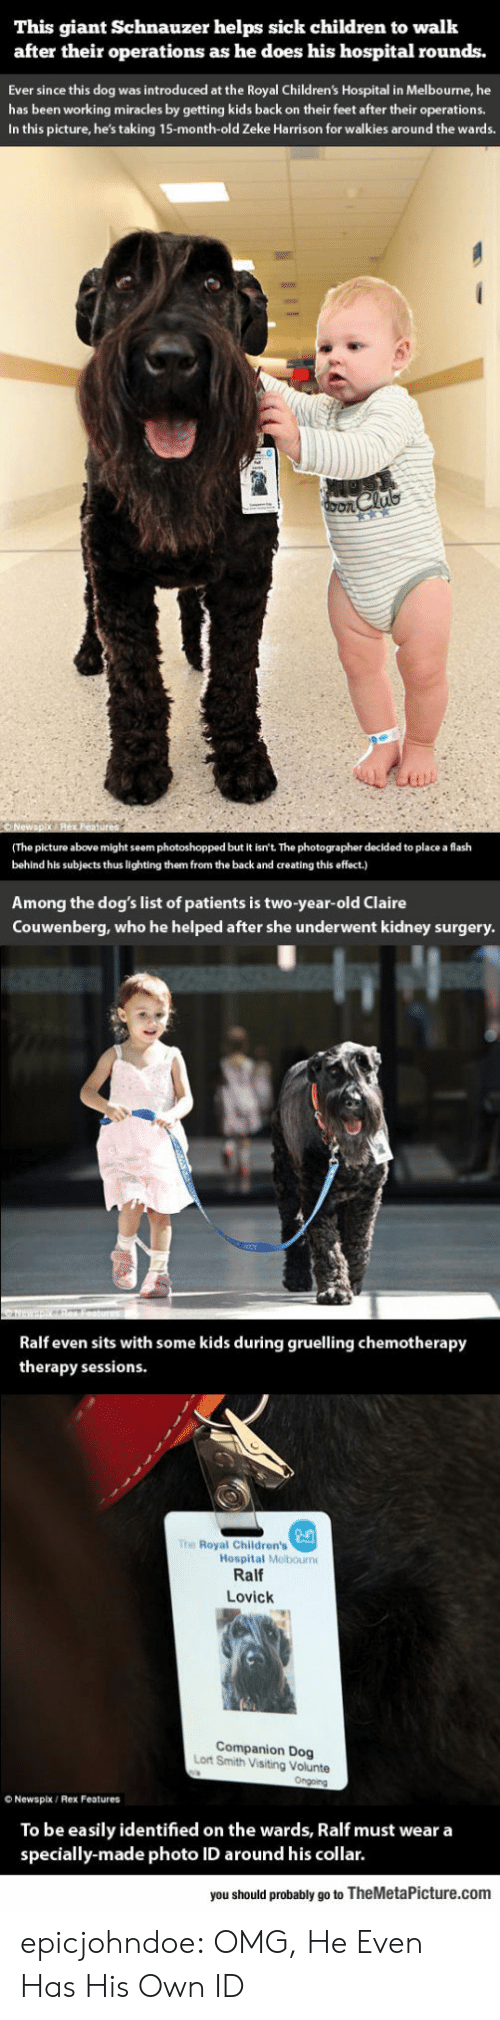 Schnauzer: This giant Schnauzer helps sick children to walk  after their operations as he does his hospital rounds.  Ever since this dog was introduced at the Royal Children's Hospital in Melbourne, he  has been working miracles by getting kids back on their feet after their operations.  In this picture, he's taking 15-month-old Zeke Harrison for walkies around the wards.  (The picture above might seem photoshopped but it isn't. The photographer decided to place a flash  behind his subjects thus lighting them from the back and creating this effect.)  Among the dog's list of patients is two-year-old Claire  Couwenberg, who he helped after she underwent kidney surgery  Ralf even sits with some kids during gruelling chemotherapy  therapy sessions  The Royal Children's  Hospital Melbourn  Ralf  Lovick  Companion Dog  Lort Smith Visiting Volunte  O Newspix/ Rex Features  To be easily identified on the wards, Ralf must wear a  specially-made photo ID around his collar.  you should probably go to TheMetaPicture.com epicjohndoe:  OMG, He Even Has His Own ID